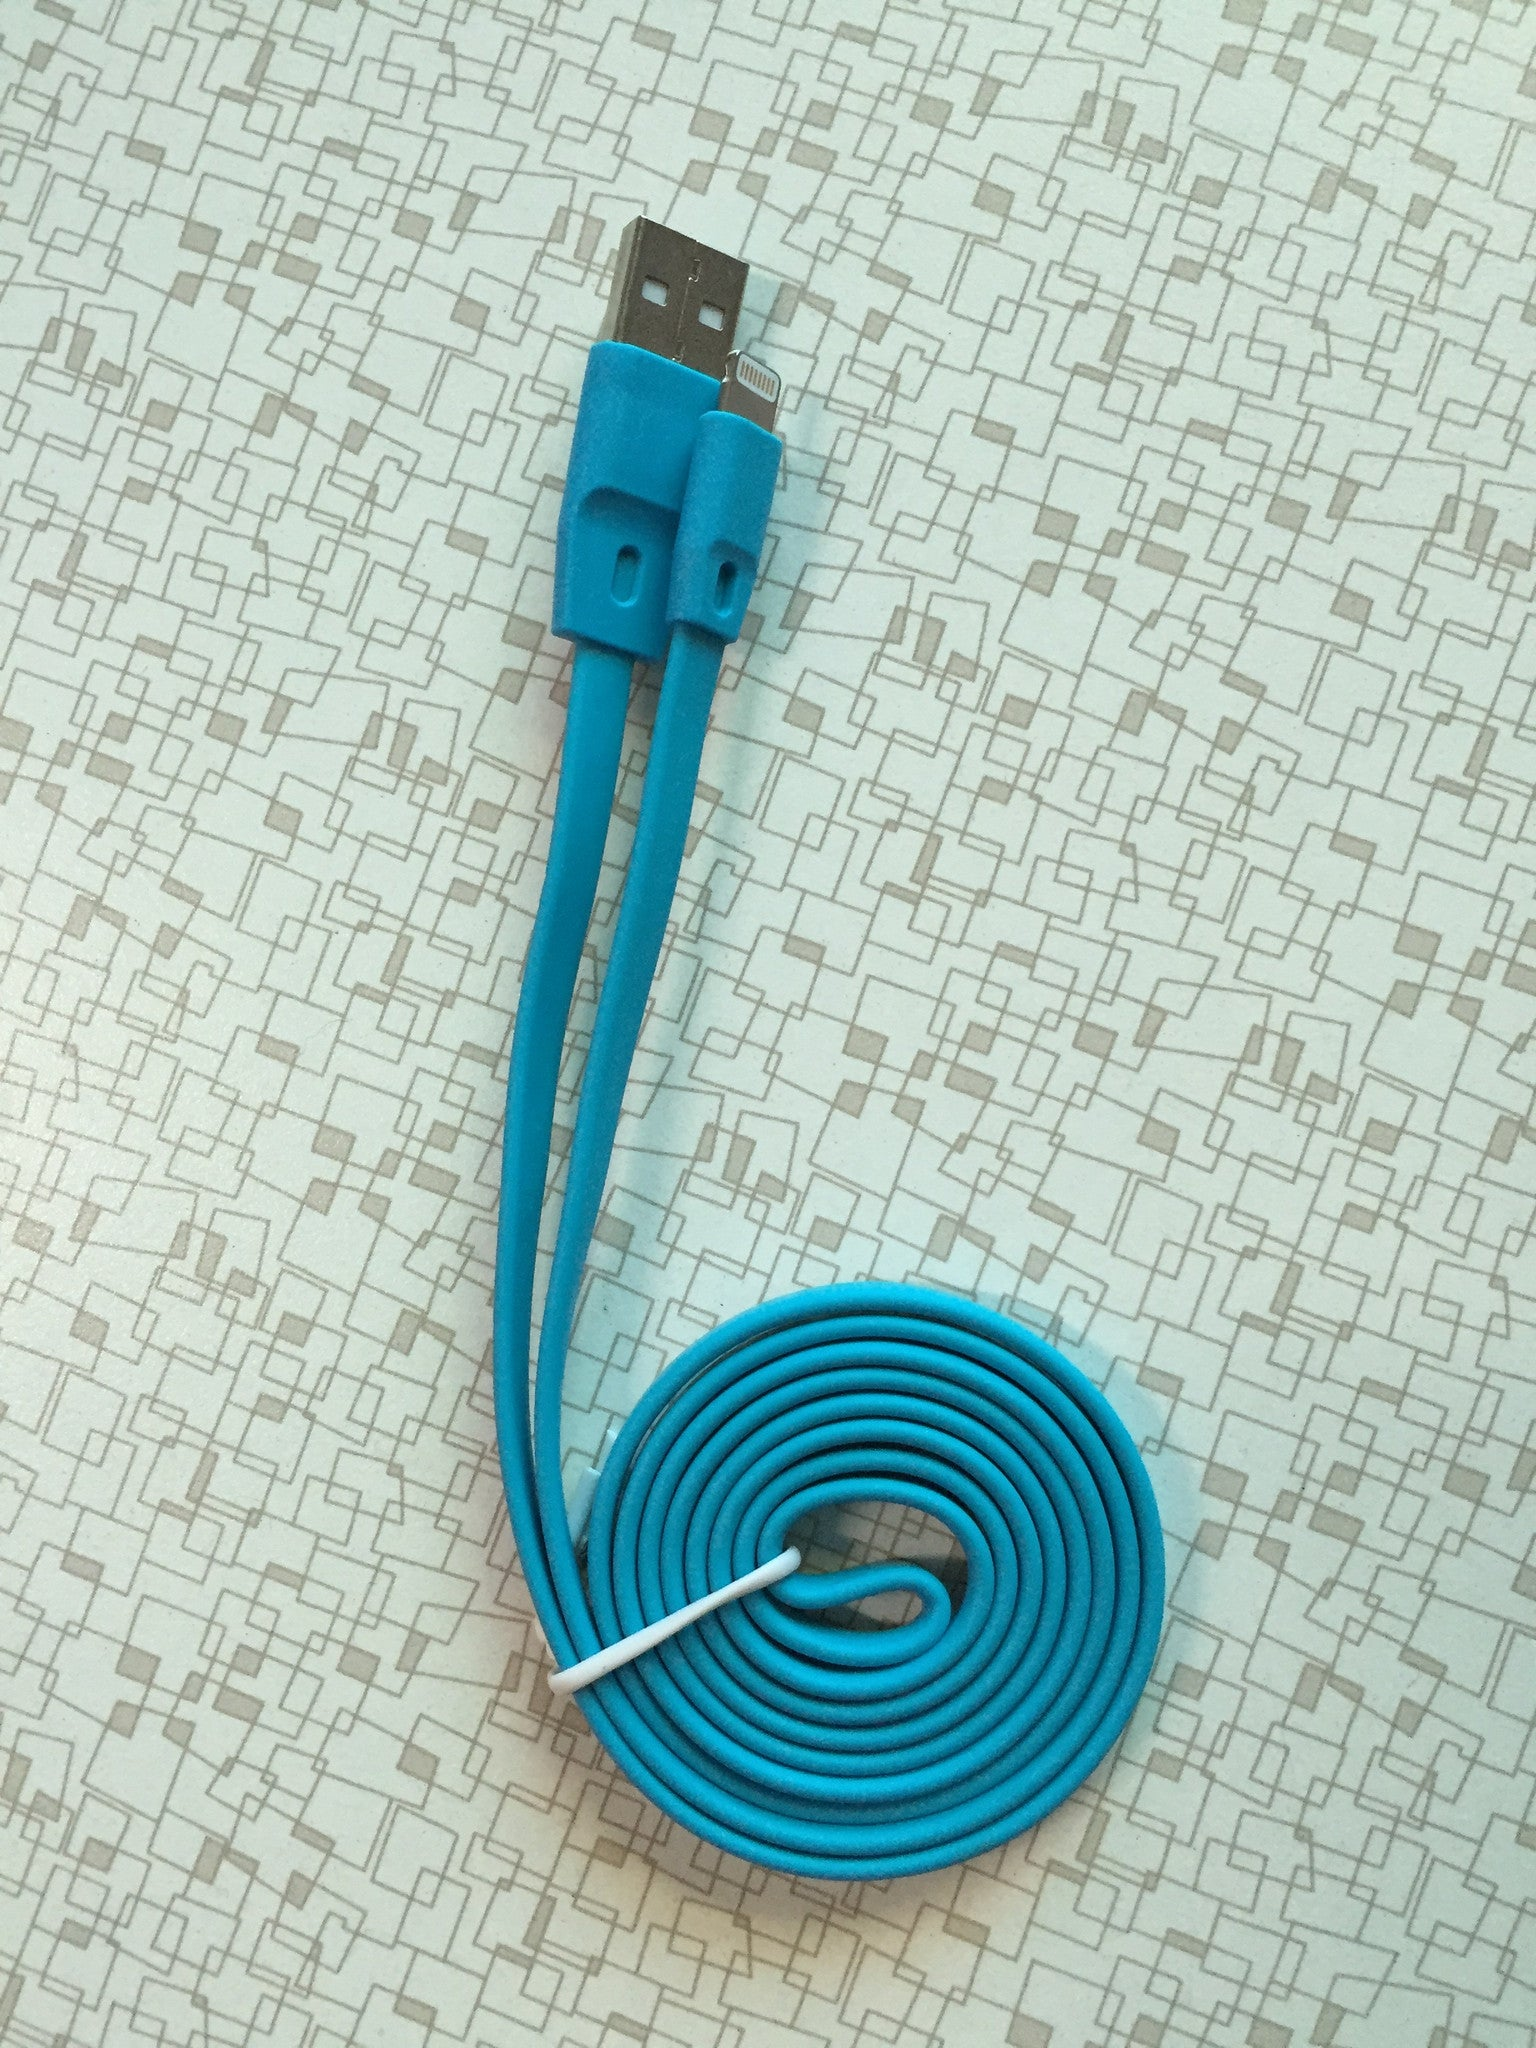 CANDO_-_ACCESSORIES_-_S004_MFI_SYNC_CABLE_I_PHONE4.JPG?v=1527258276